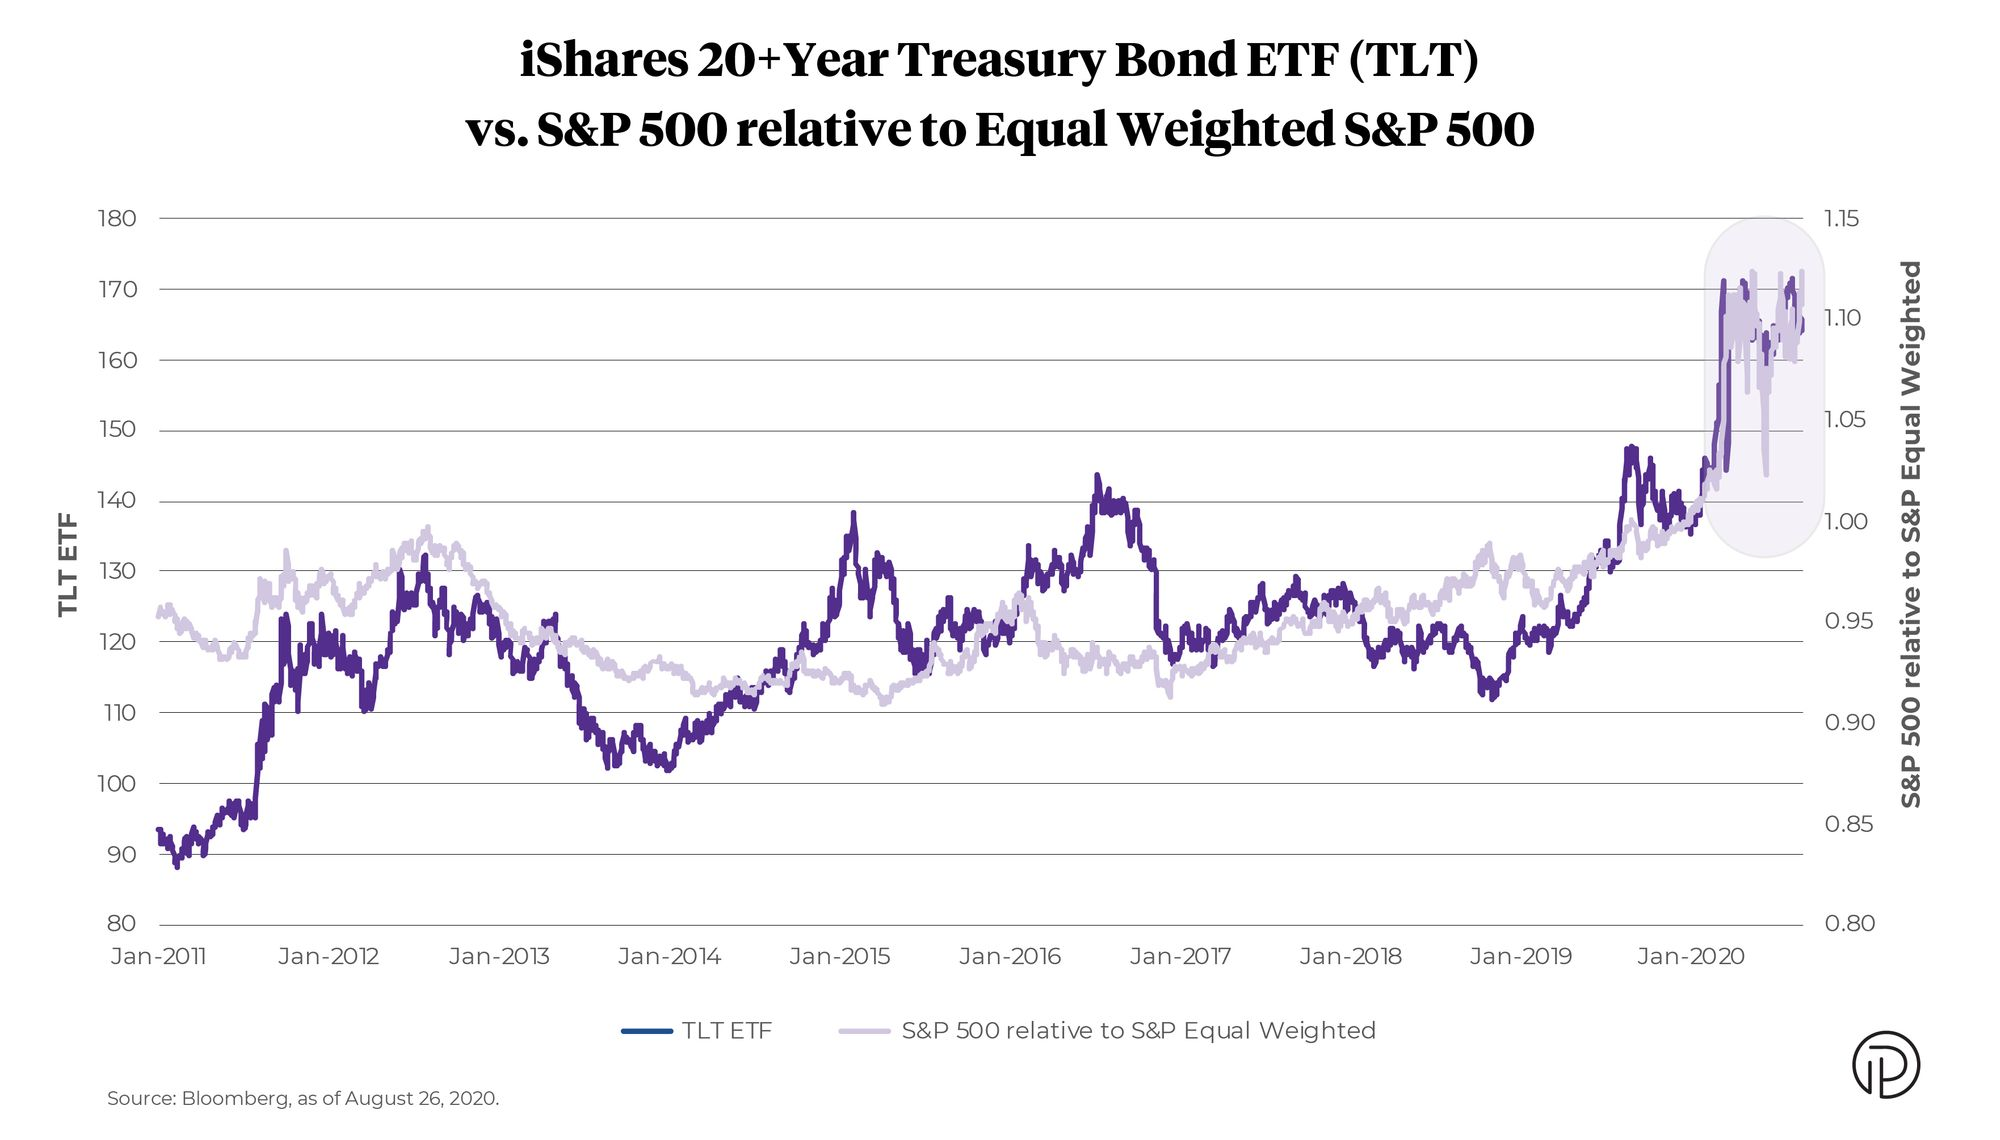 Chart of iShares 20+ Year Treasury Bond ETF (TLT) versus S&P relative to Equal Weighted S&P 500